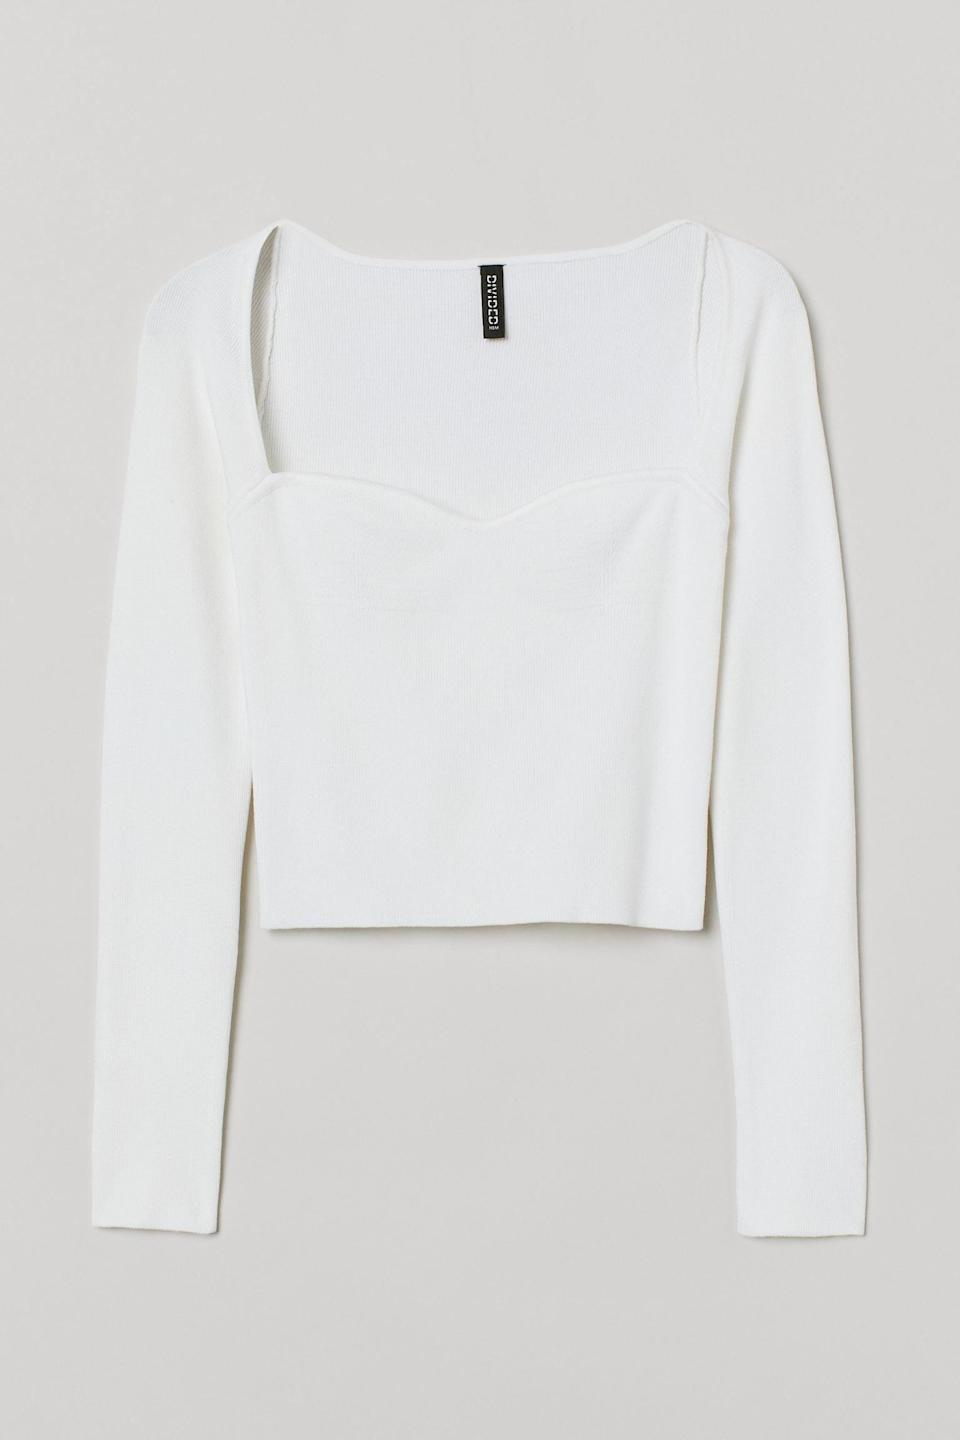 <p>Soak up the sun on a warm day in this sultry <span>H&amp;M Ribbed Top</span> ($25).</p>